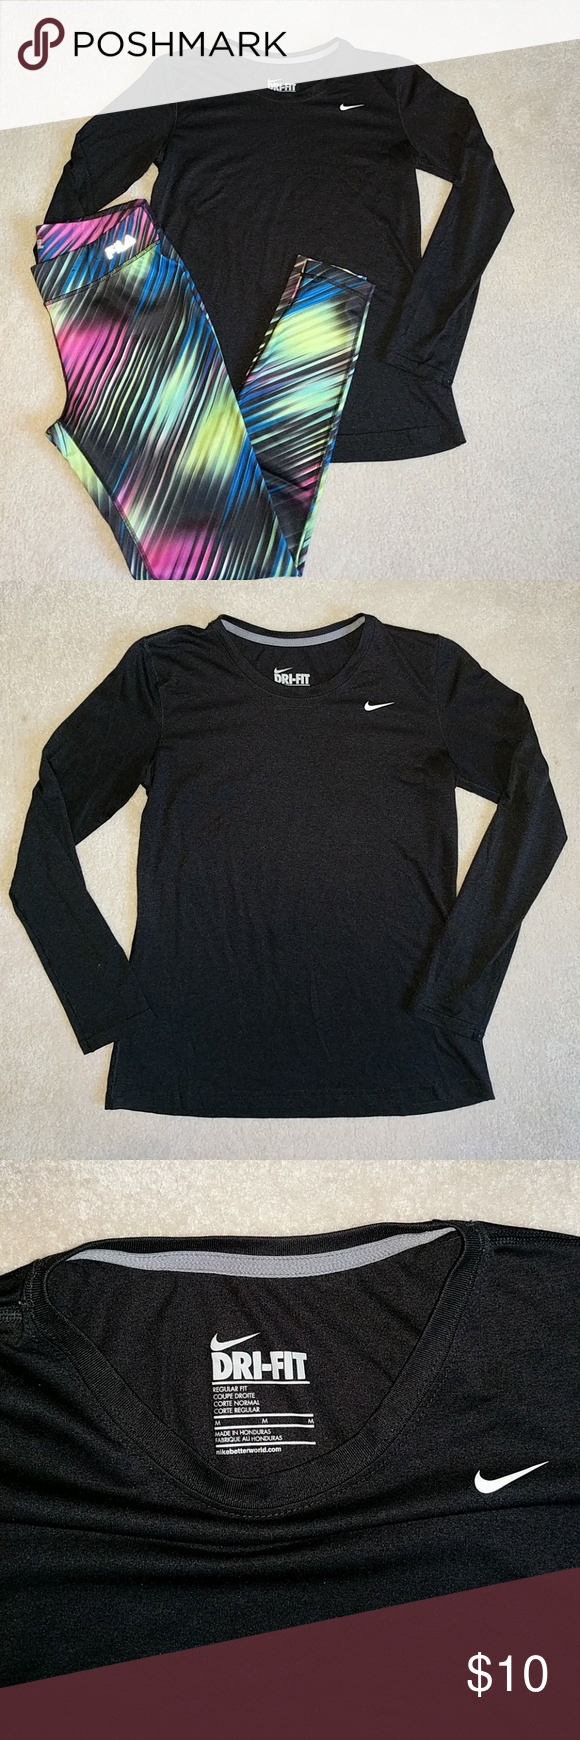 """Nike Dri-fit Womens Long Sleeve Shirt Color: black Fit: """"regular fit"""" Type: Nike Dri-fit, long sleeve  Condition: pre-loved, no stains/pilling/holes Material: 100% polyester Always feel free to make an offer! I will also discount bundles of 2+ items 😁 Nike Tops Tees - Long Sleeve"""